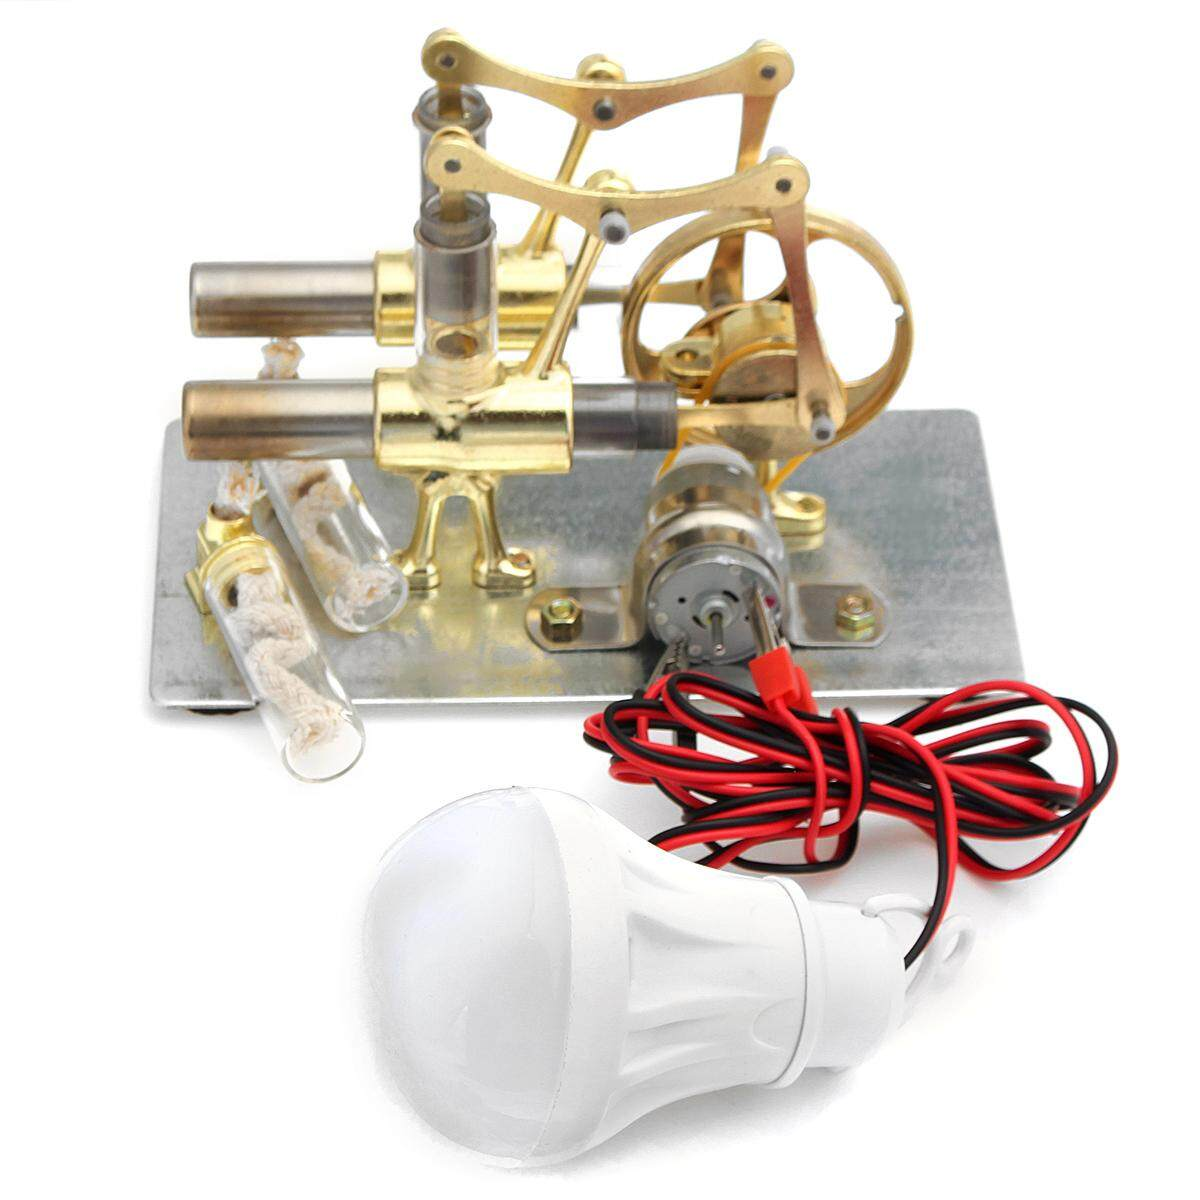 Mini Hot Air Stirling Generator Double Cylinder Engine Model - Intl By Teamtop.